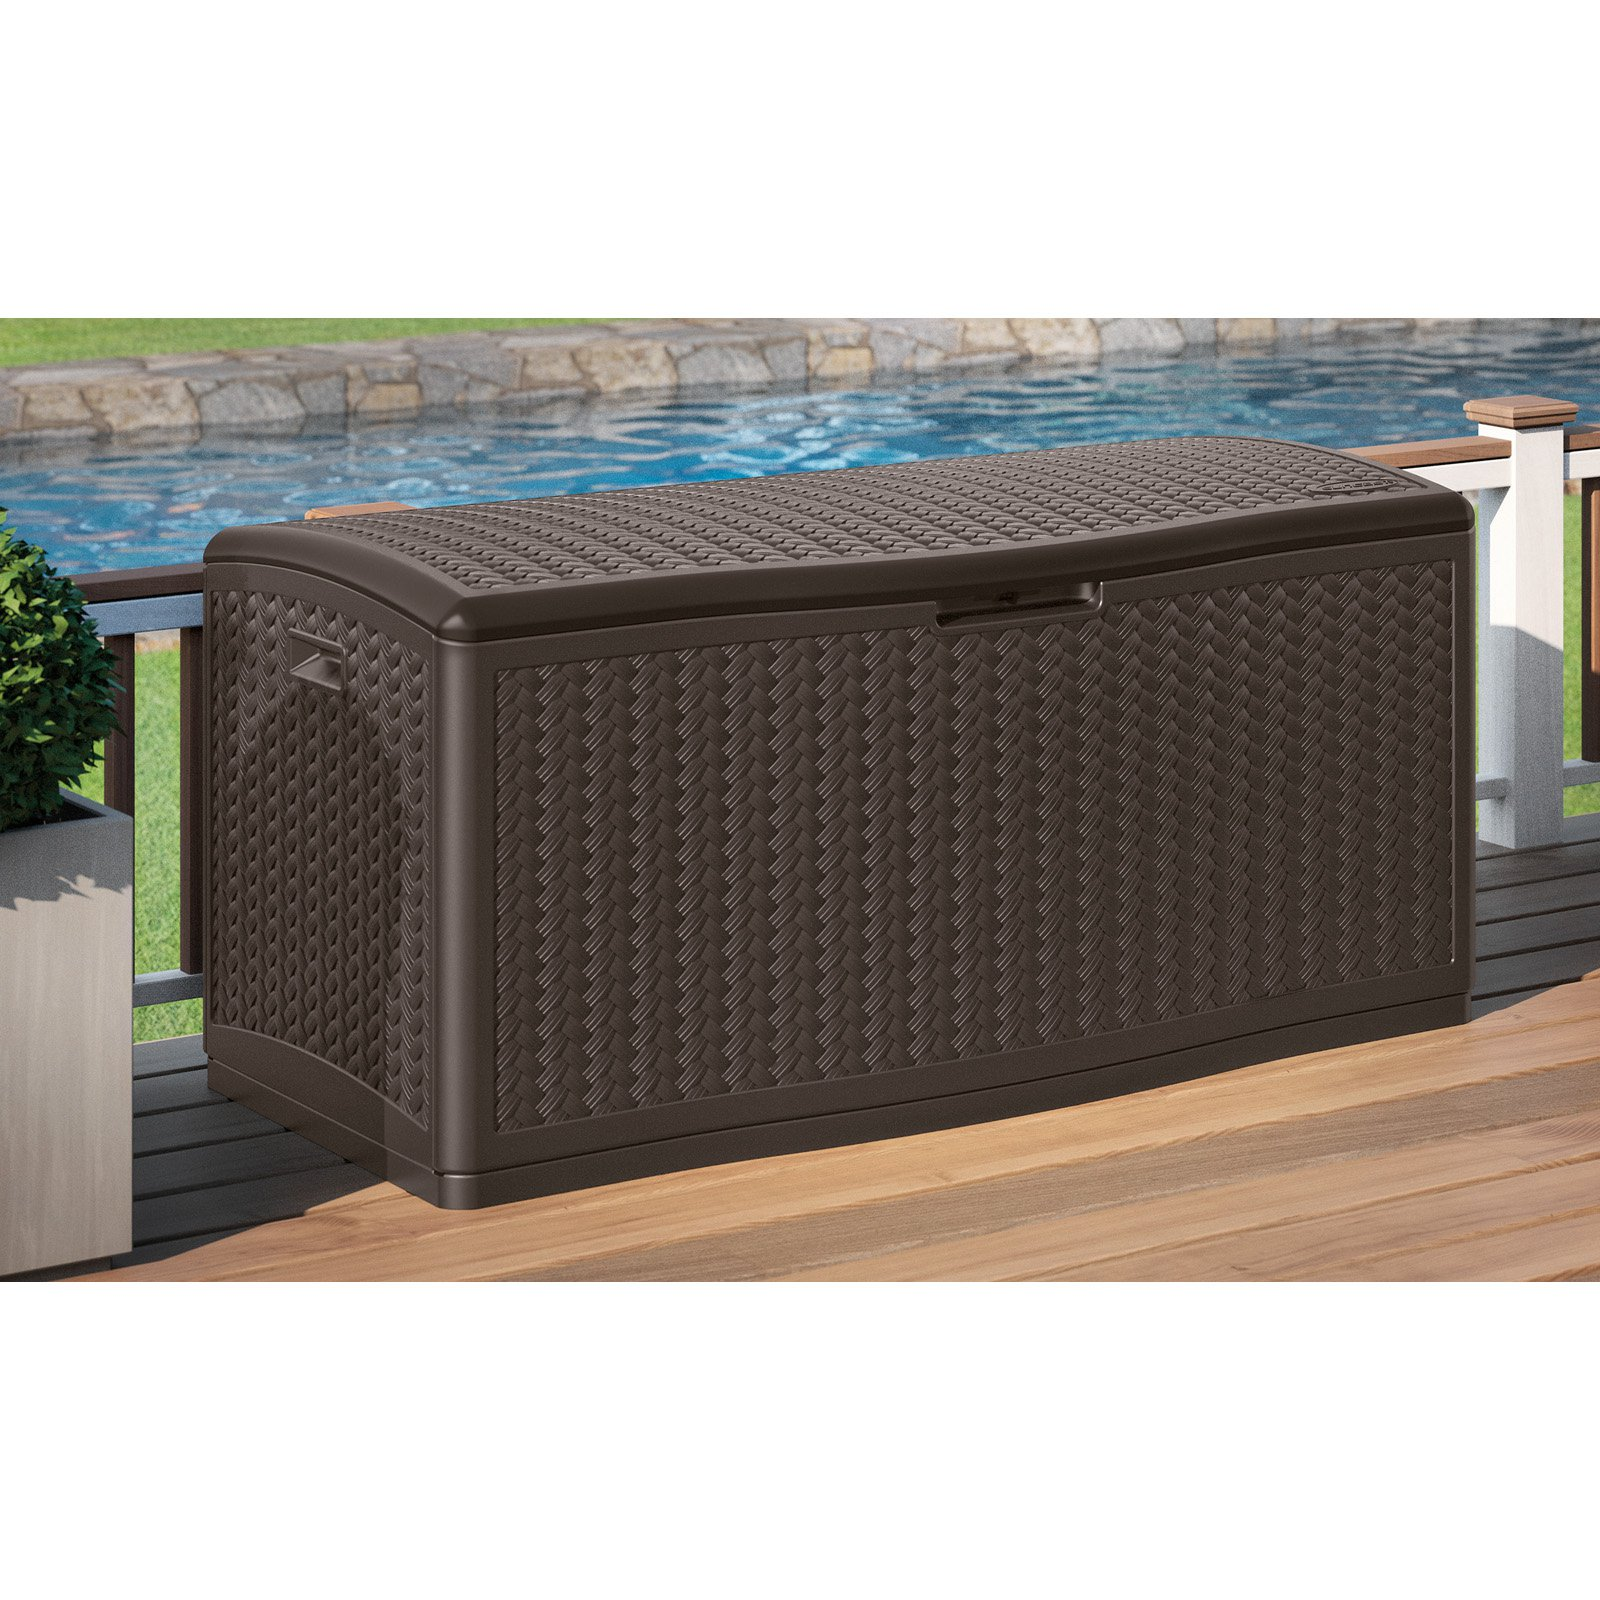 Pool Deck Boxes Storage | Keter 150 Gallon Deck Box | Keter Rockwood 150 Gallon Deck Box